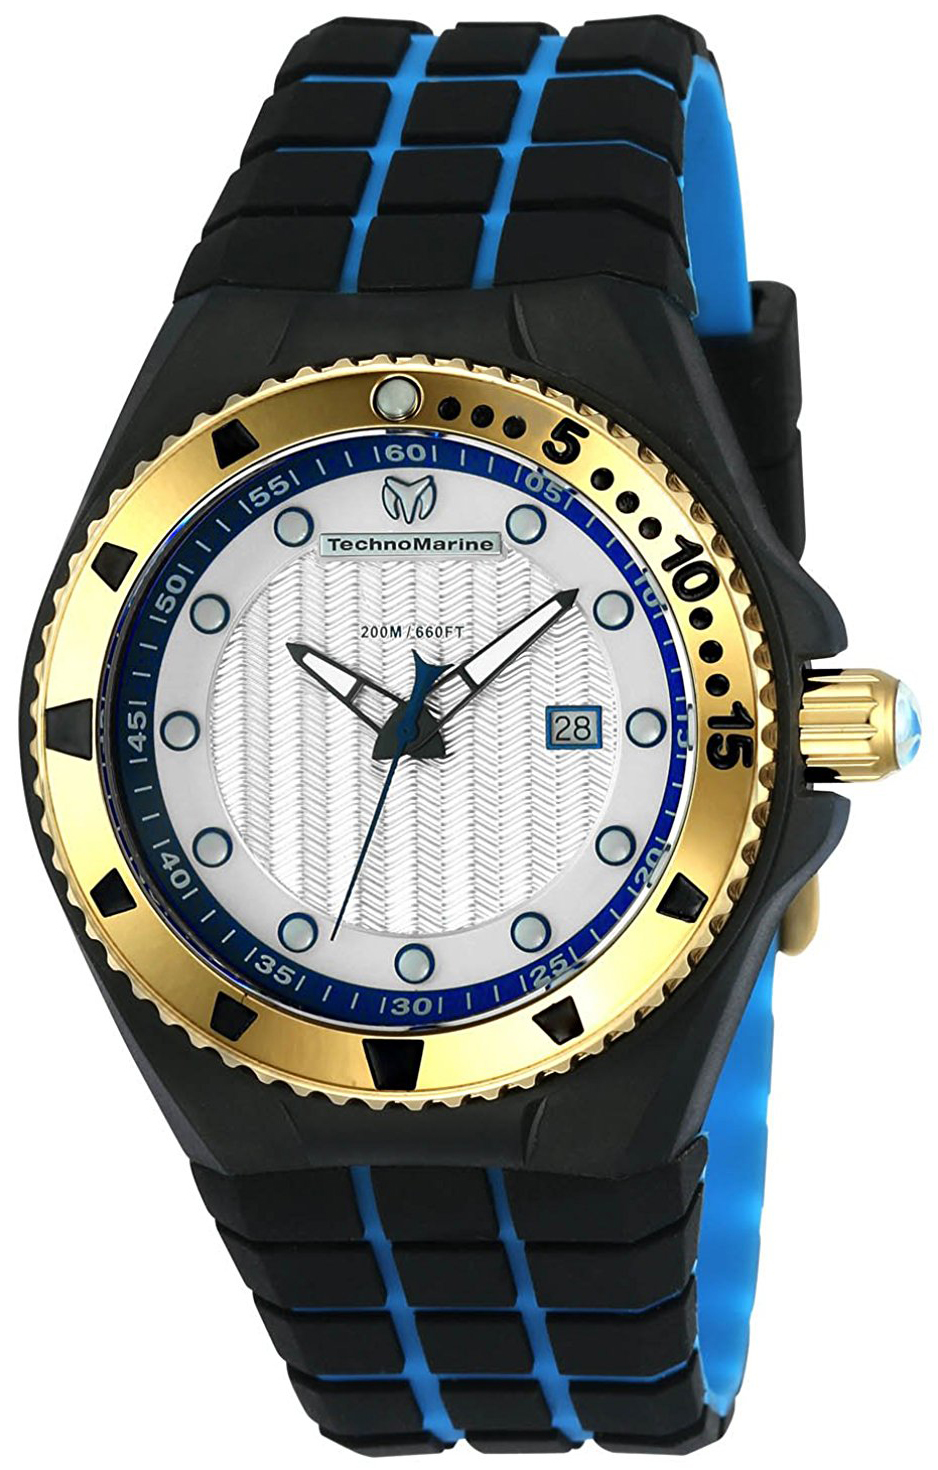 Technomarine Cruise Locker Herrklocka TM-115220 Silverfärgad/Gummi Ø45 mm - Technomarine